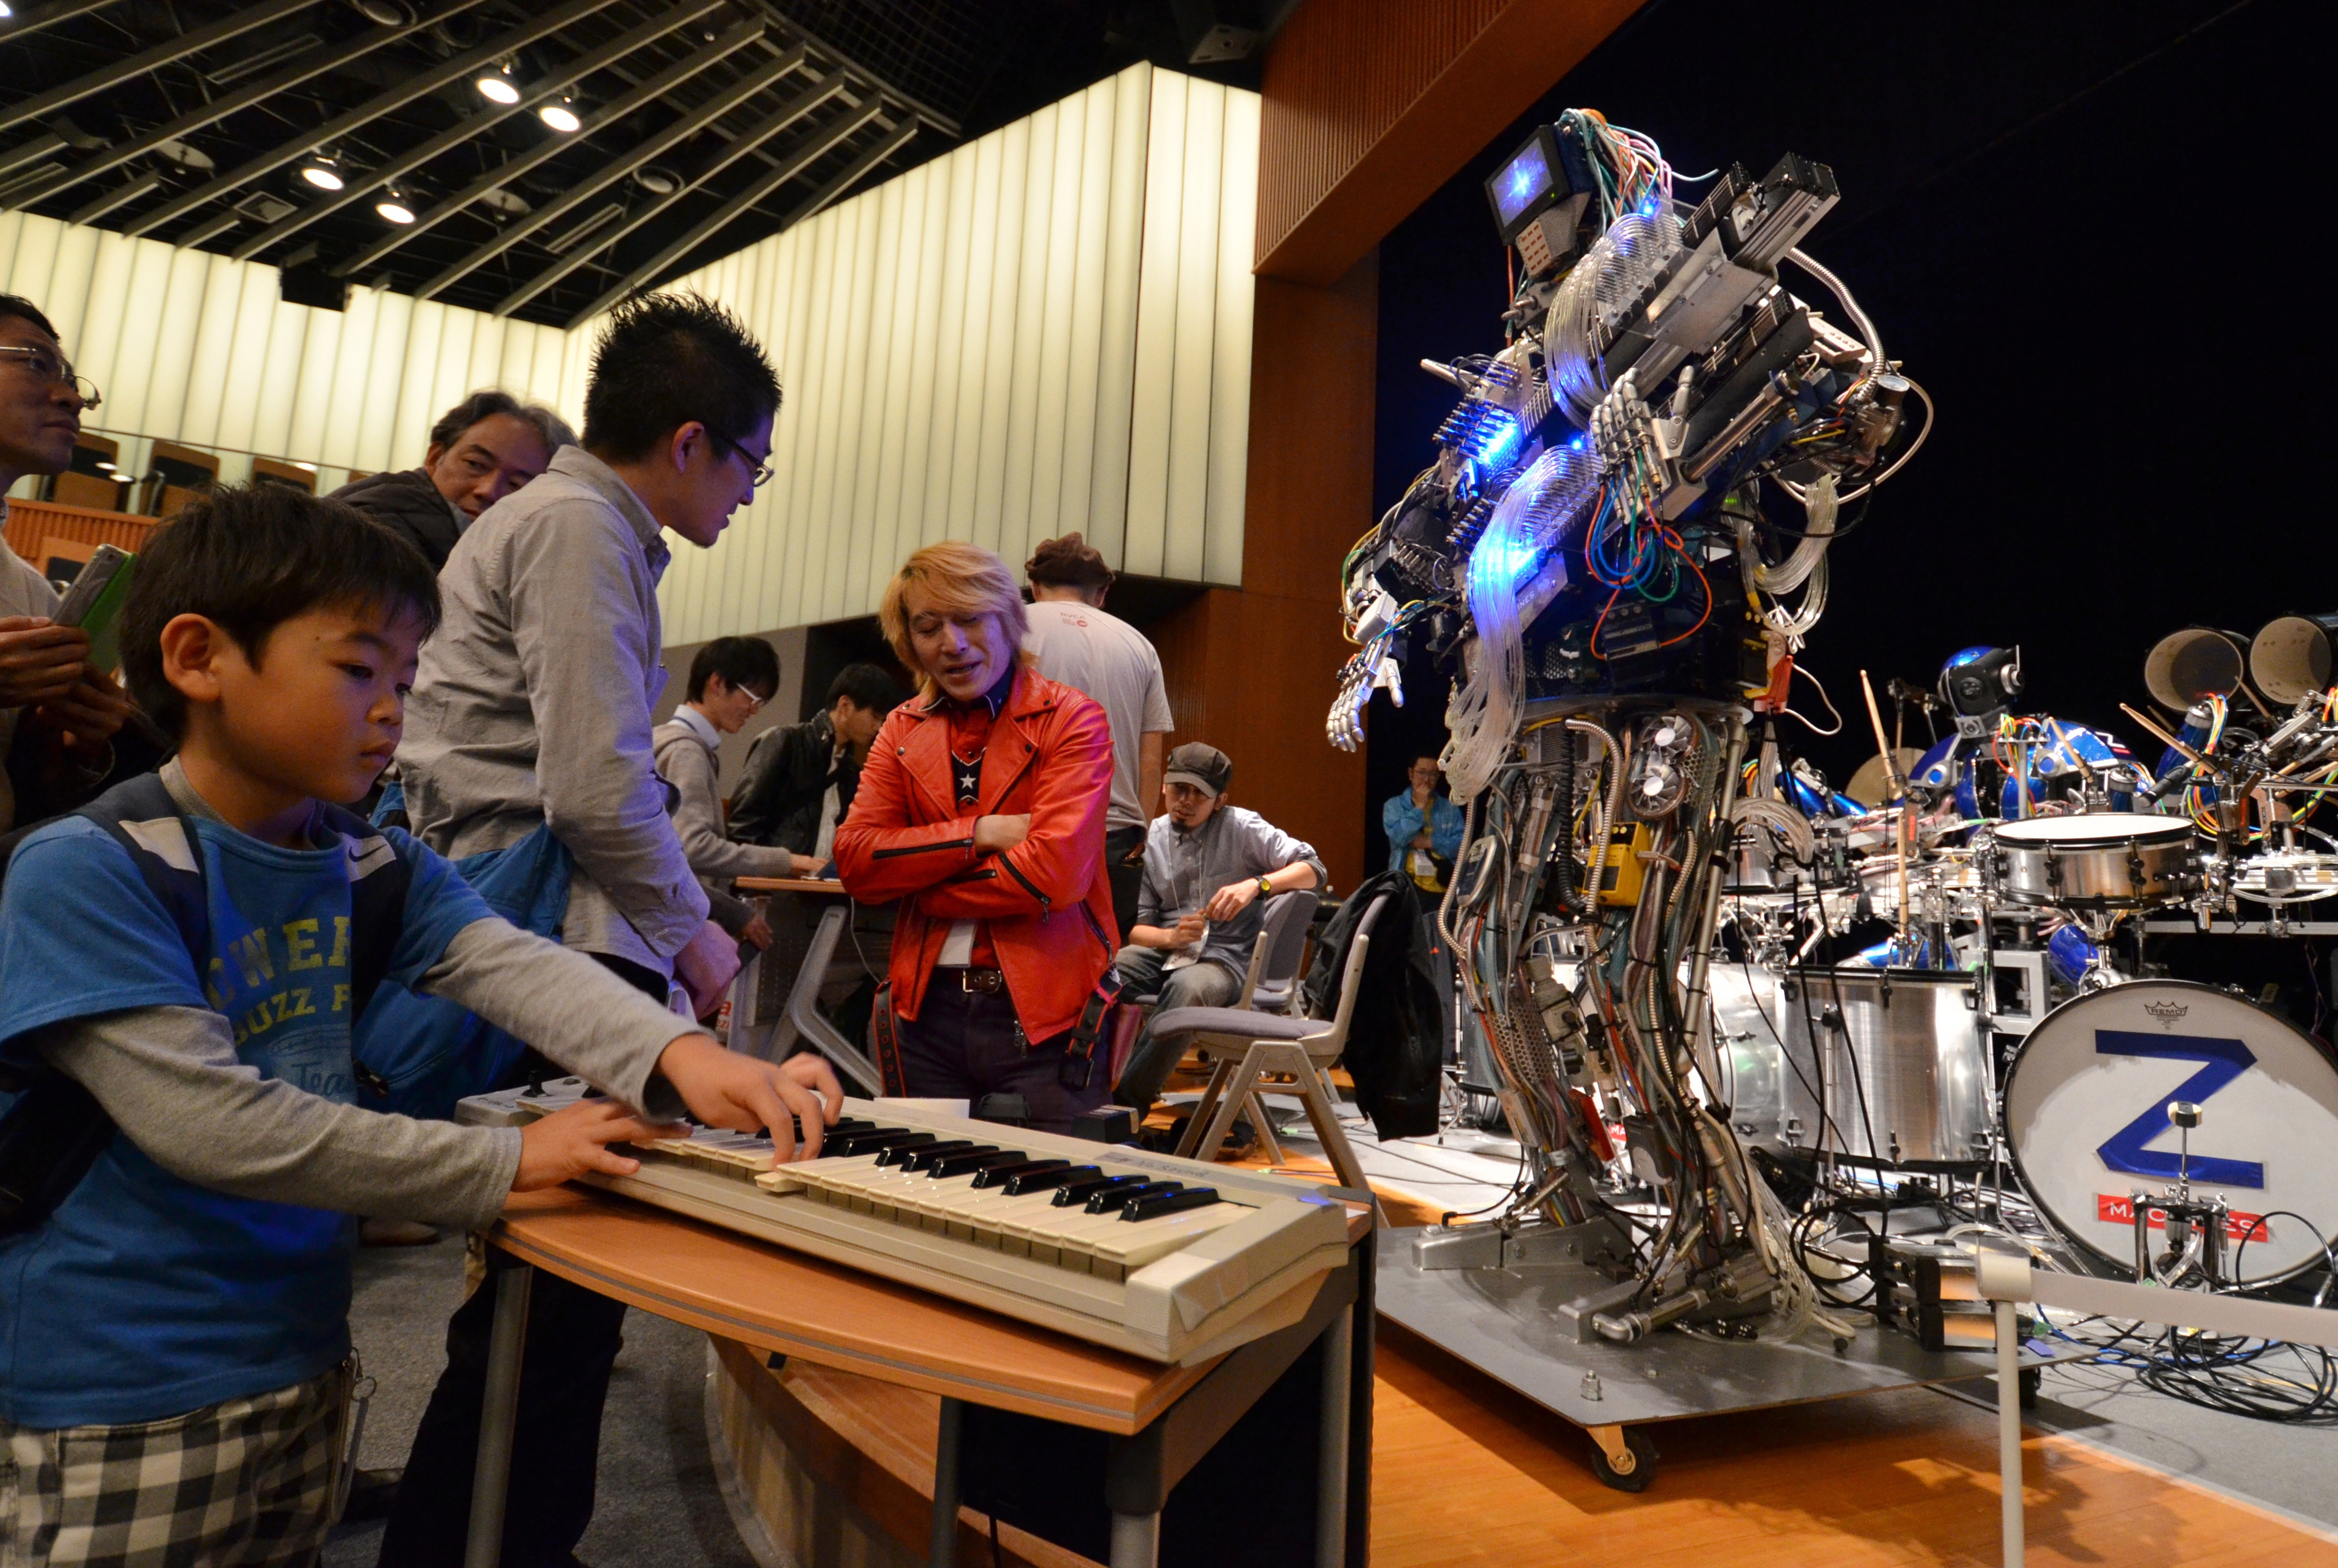 A boy plays a keyboard to control robot guitarist  Mach , a member of a robot rock band  Z-Machines , during the two day art and technology event  Maker Faire Tokyo  at the National Museum of Emerging Science and Innovation in Tokyo on November 3, 2013.